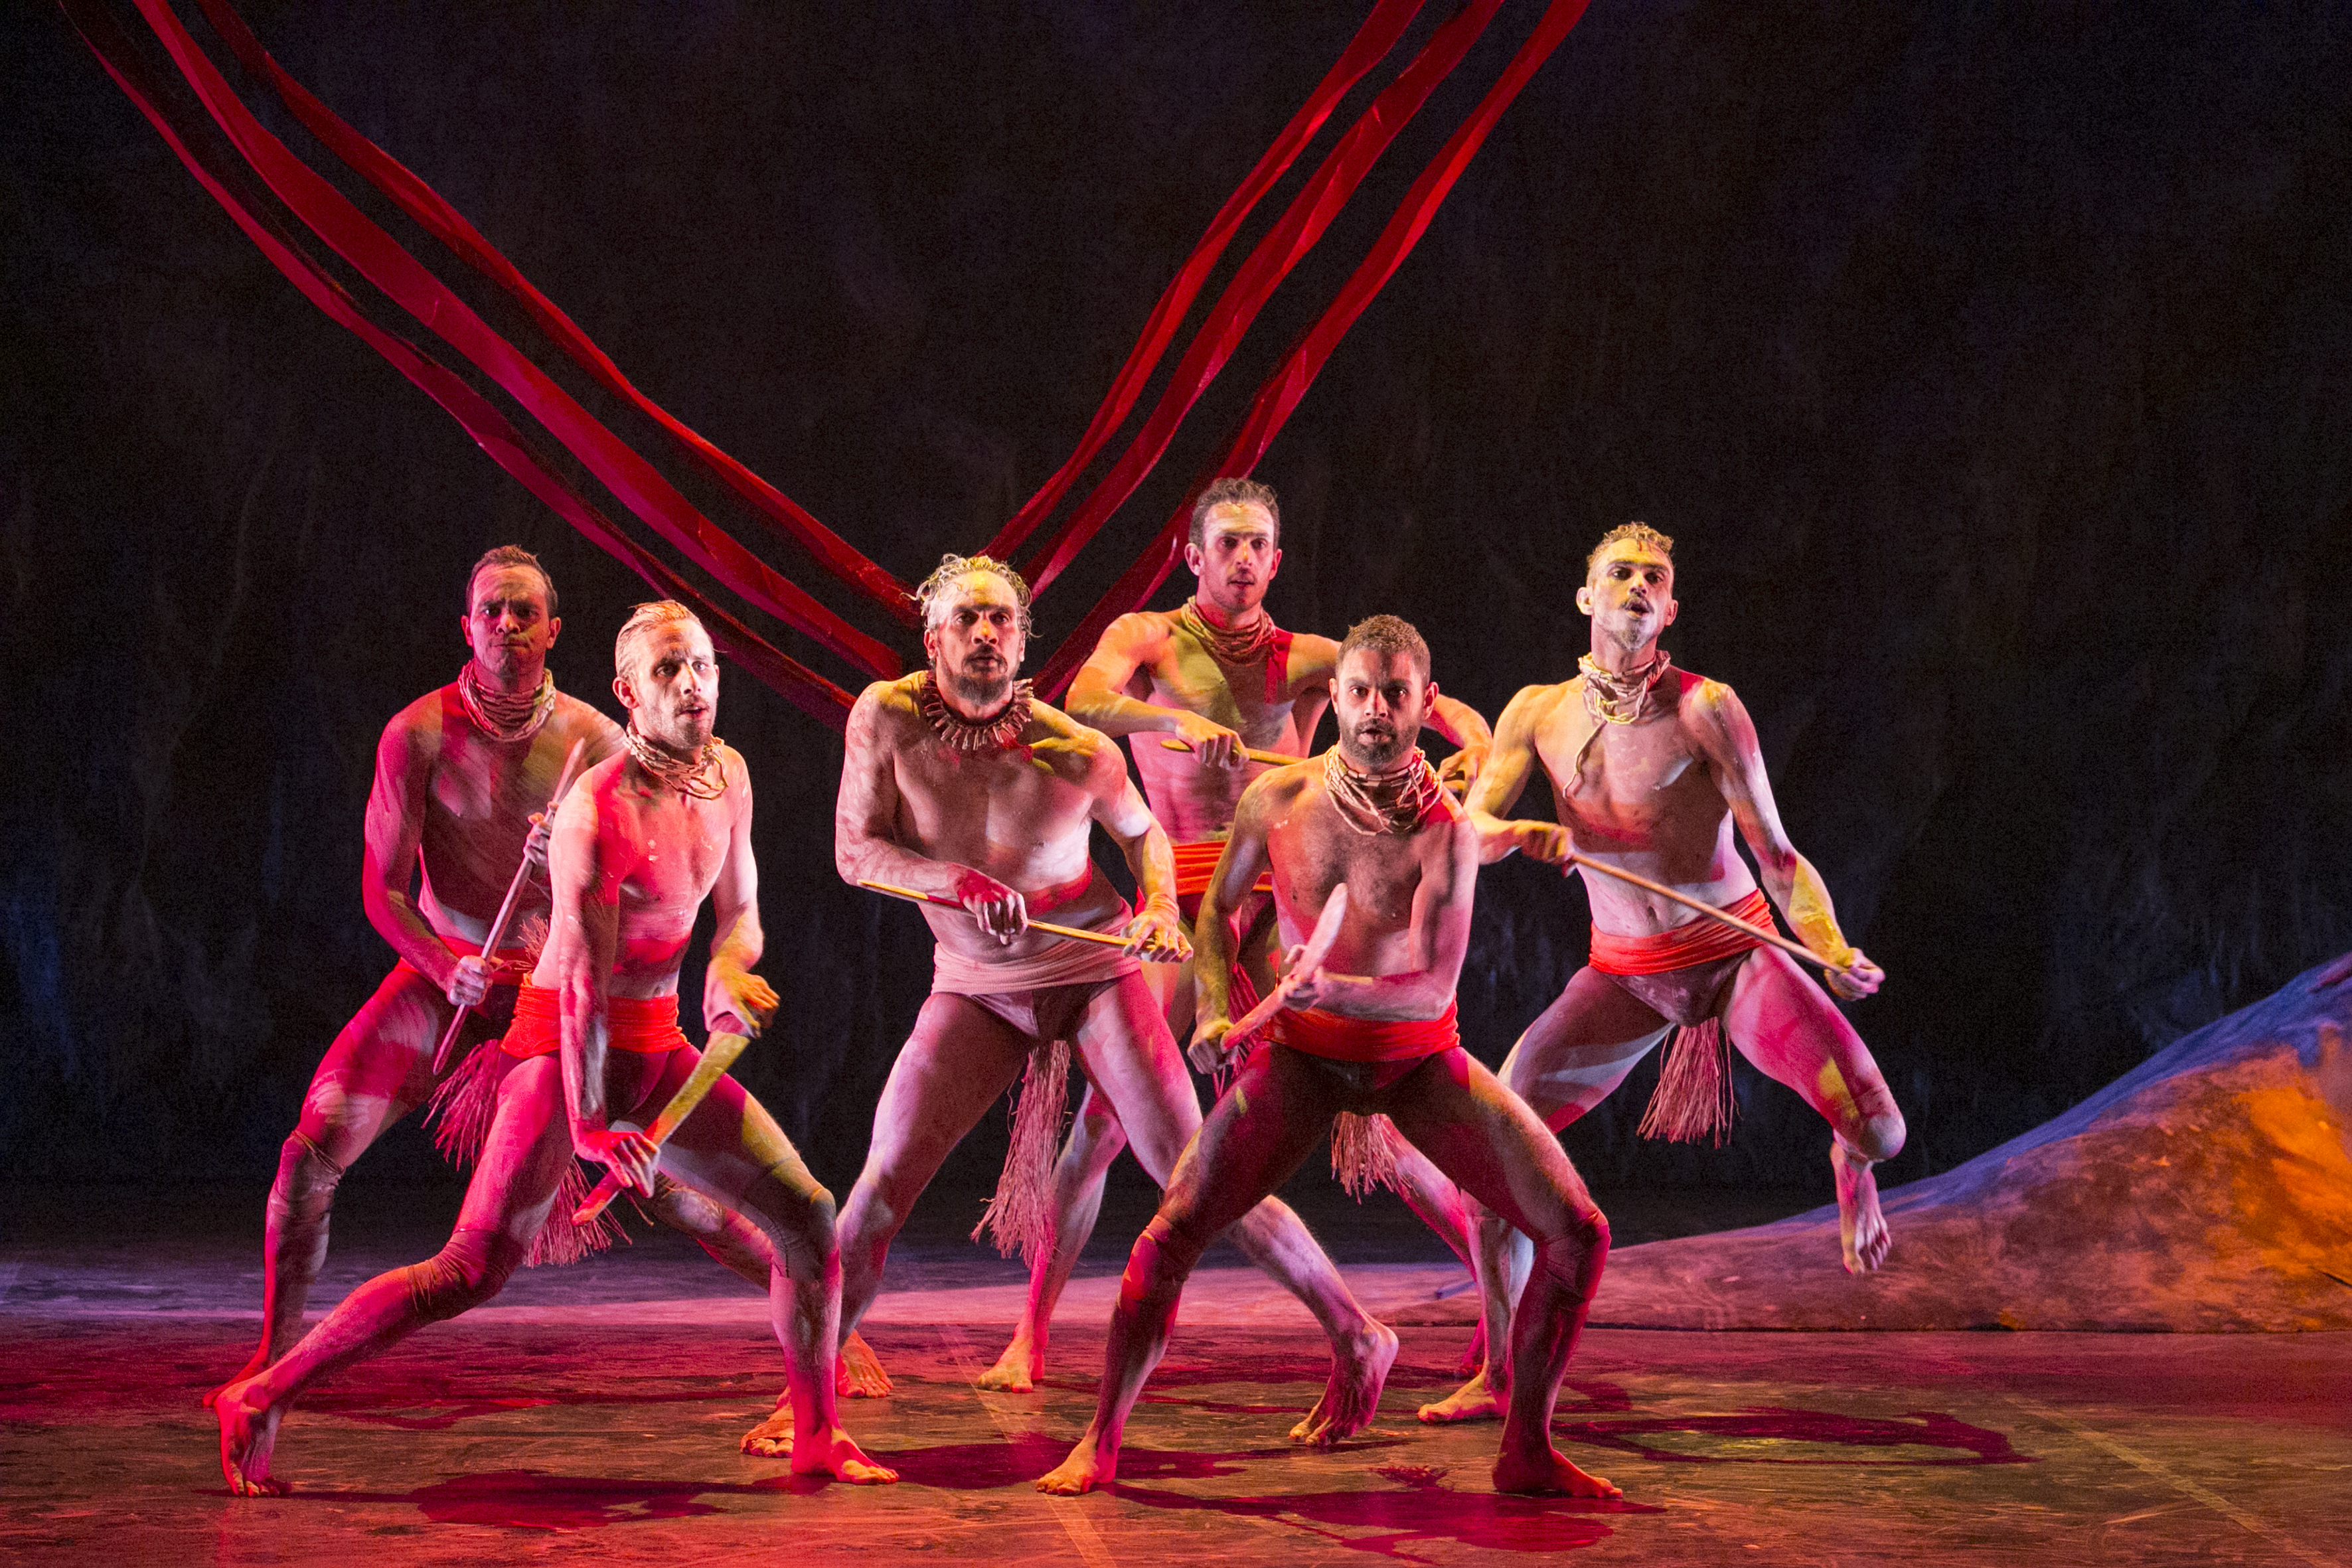 chorographic fusion between contemporary dance and indigenous movement in bangarra dance theatre ess A fusion of which two dance styles best describes the work of bangarra dance theatre a) ballet and contemporary c) contemporary and indigenous movement omer.